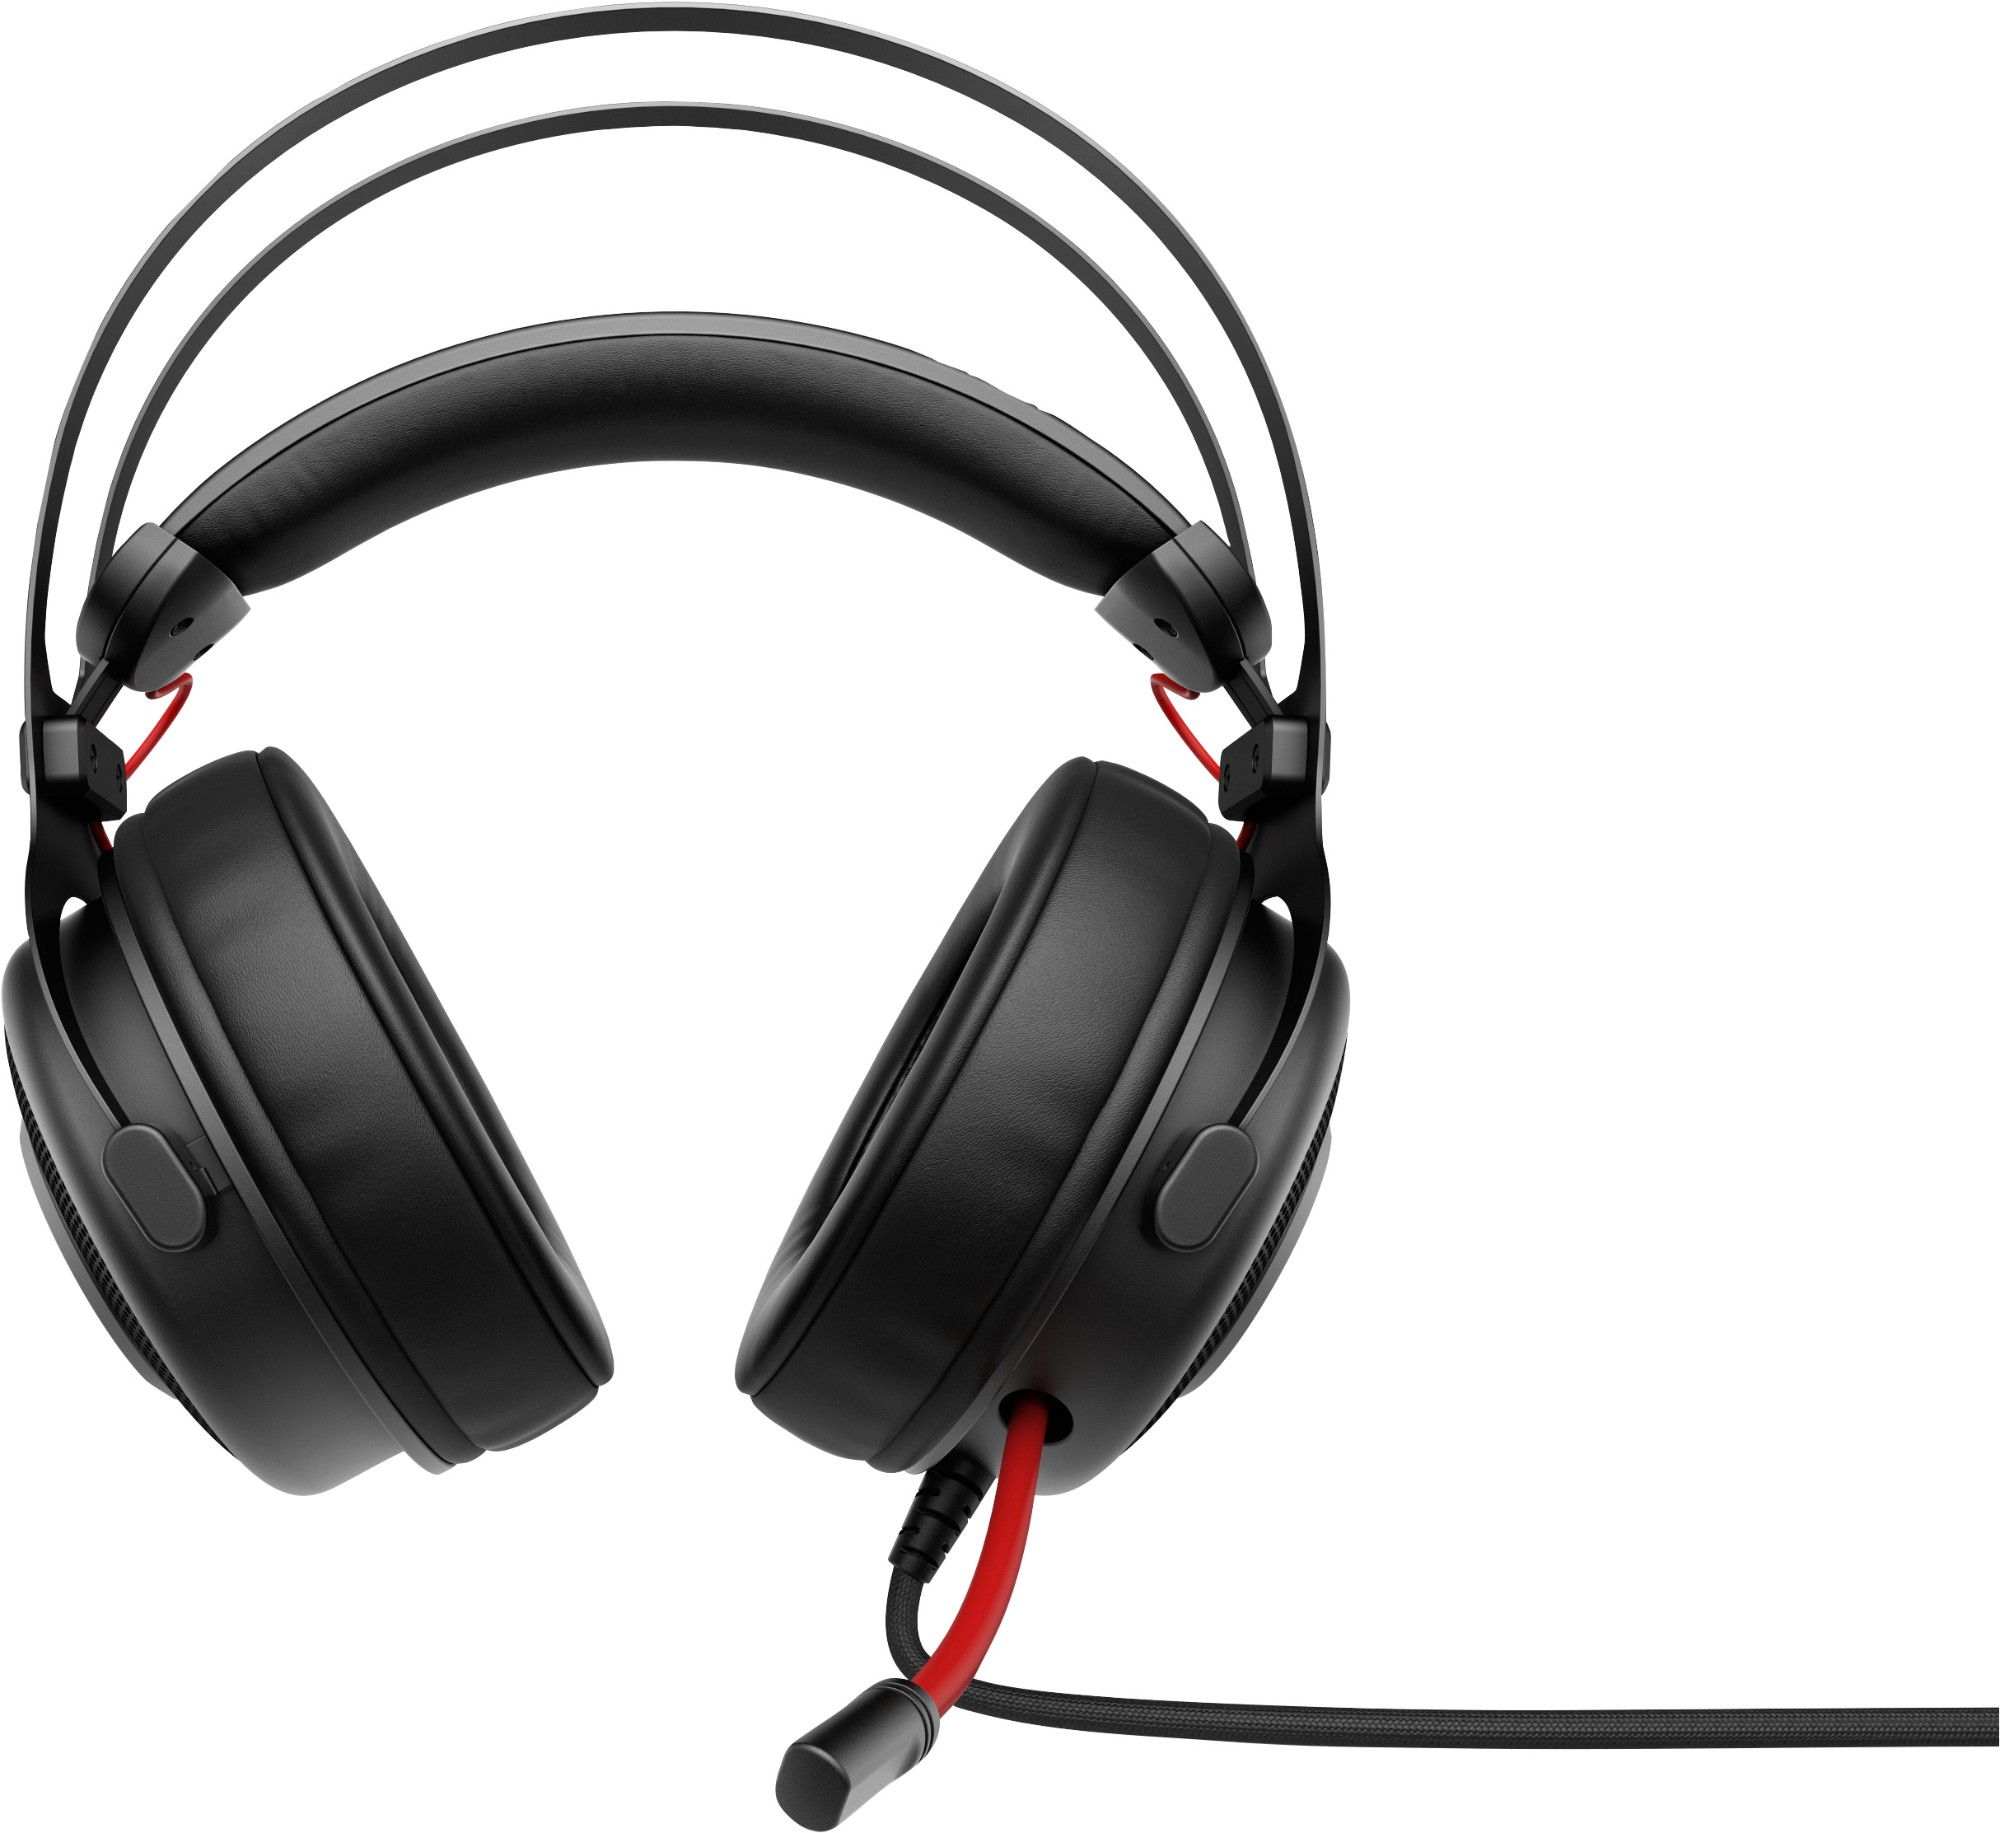 Headset 800 OMEN by HP Gaming - Stereo - 3.5mm